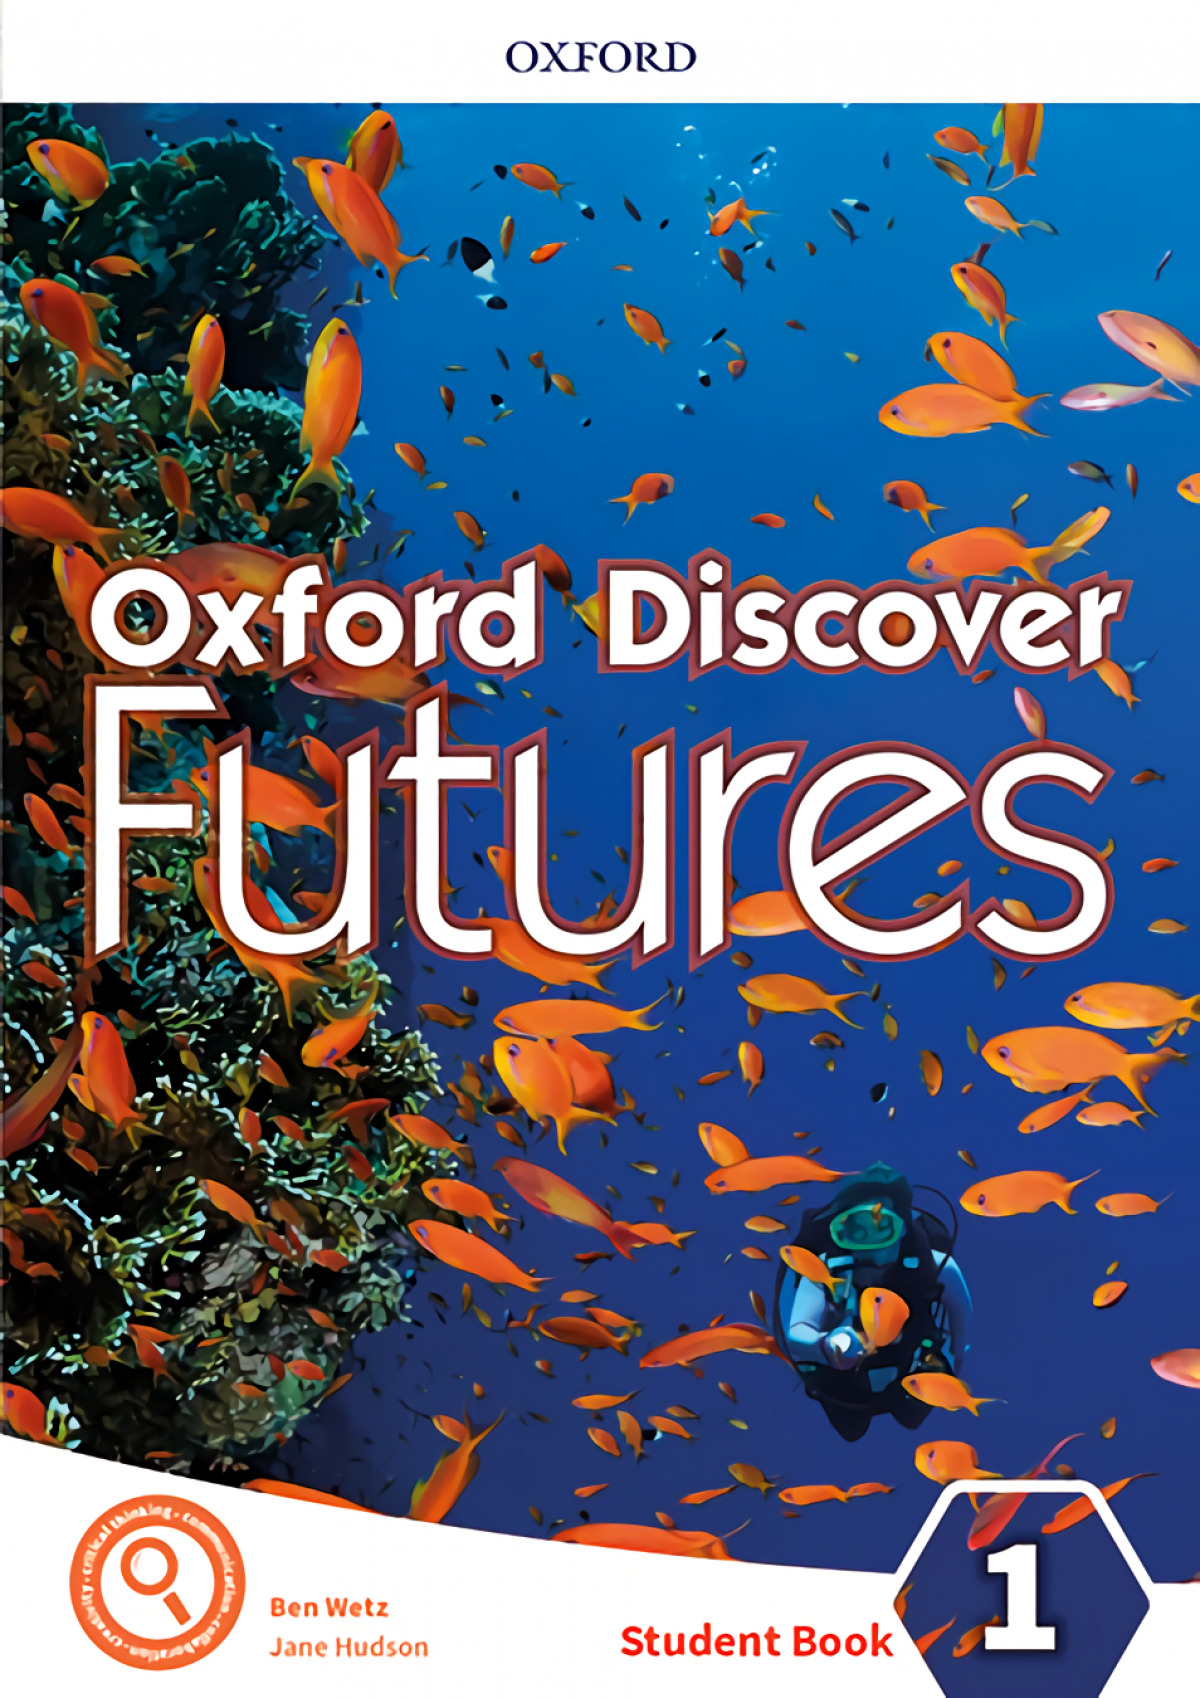 Oxford Discover Futures 1. Student's Book